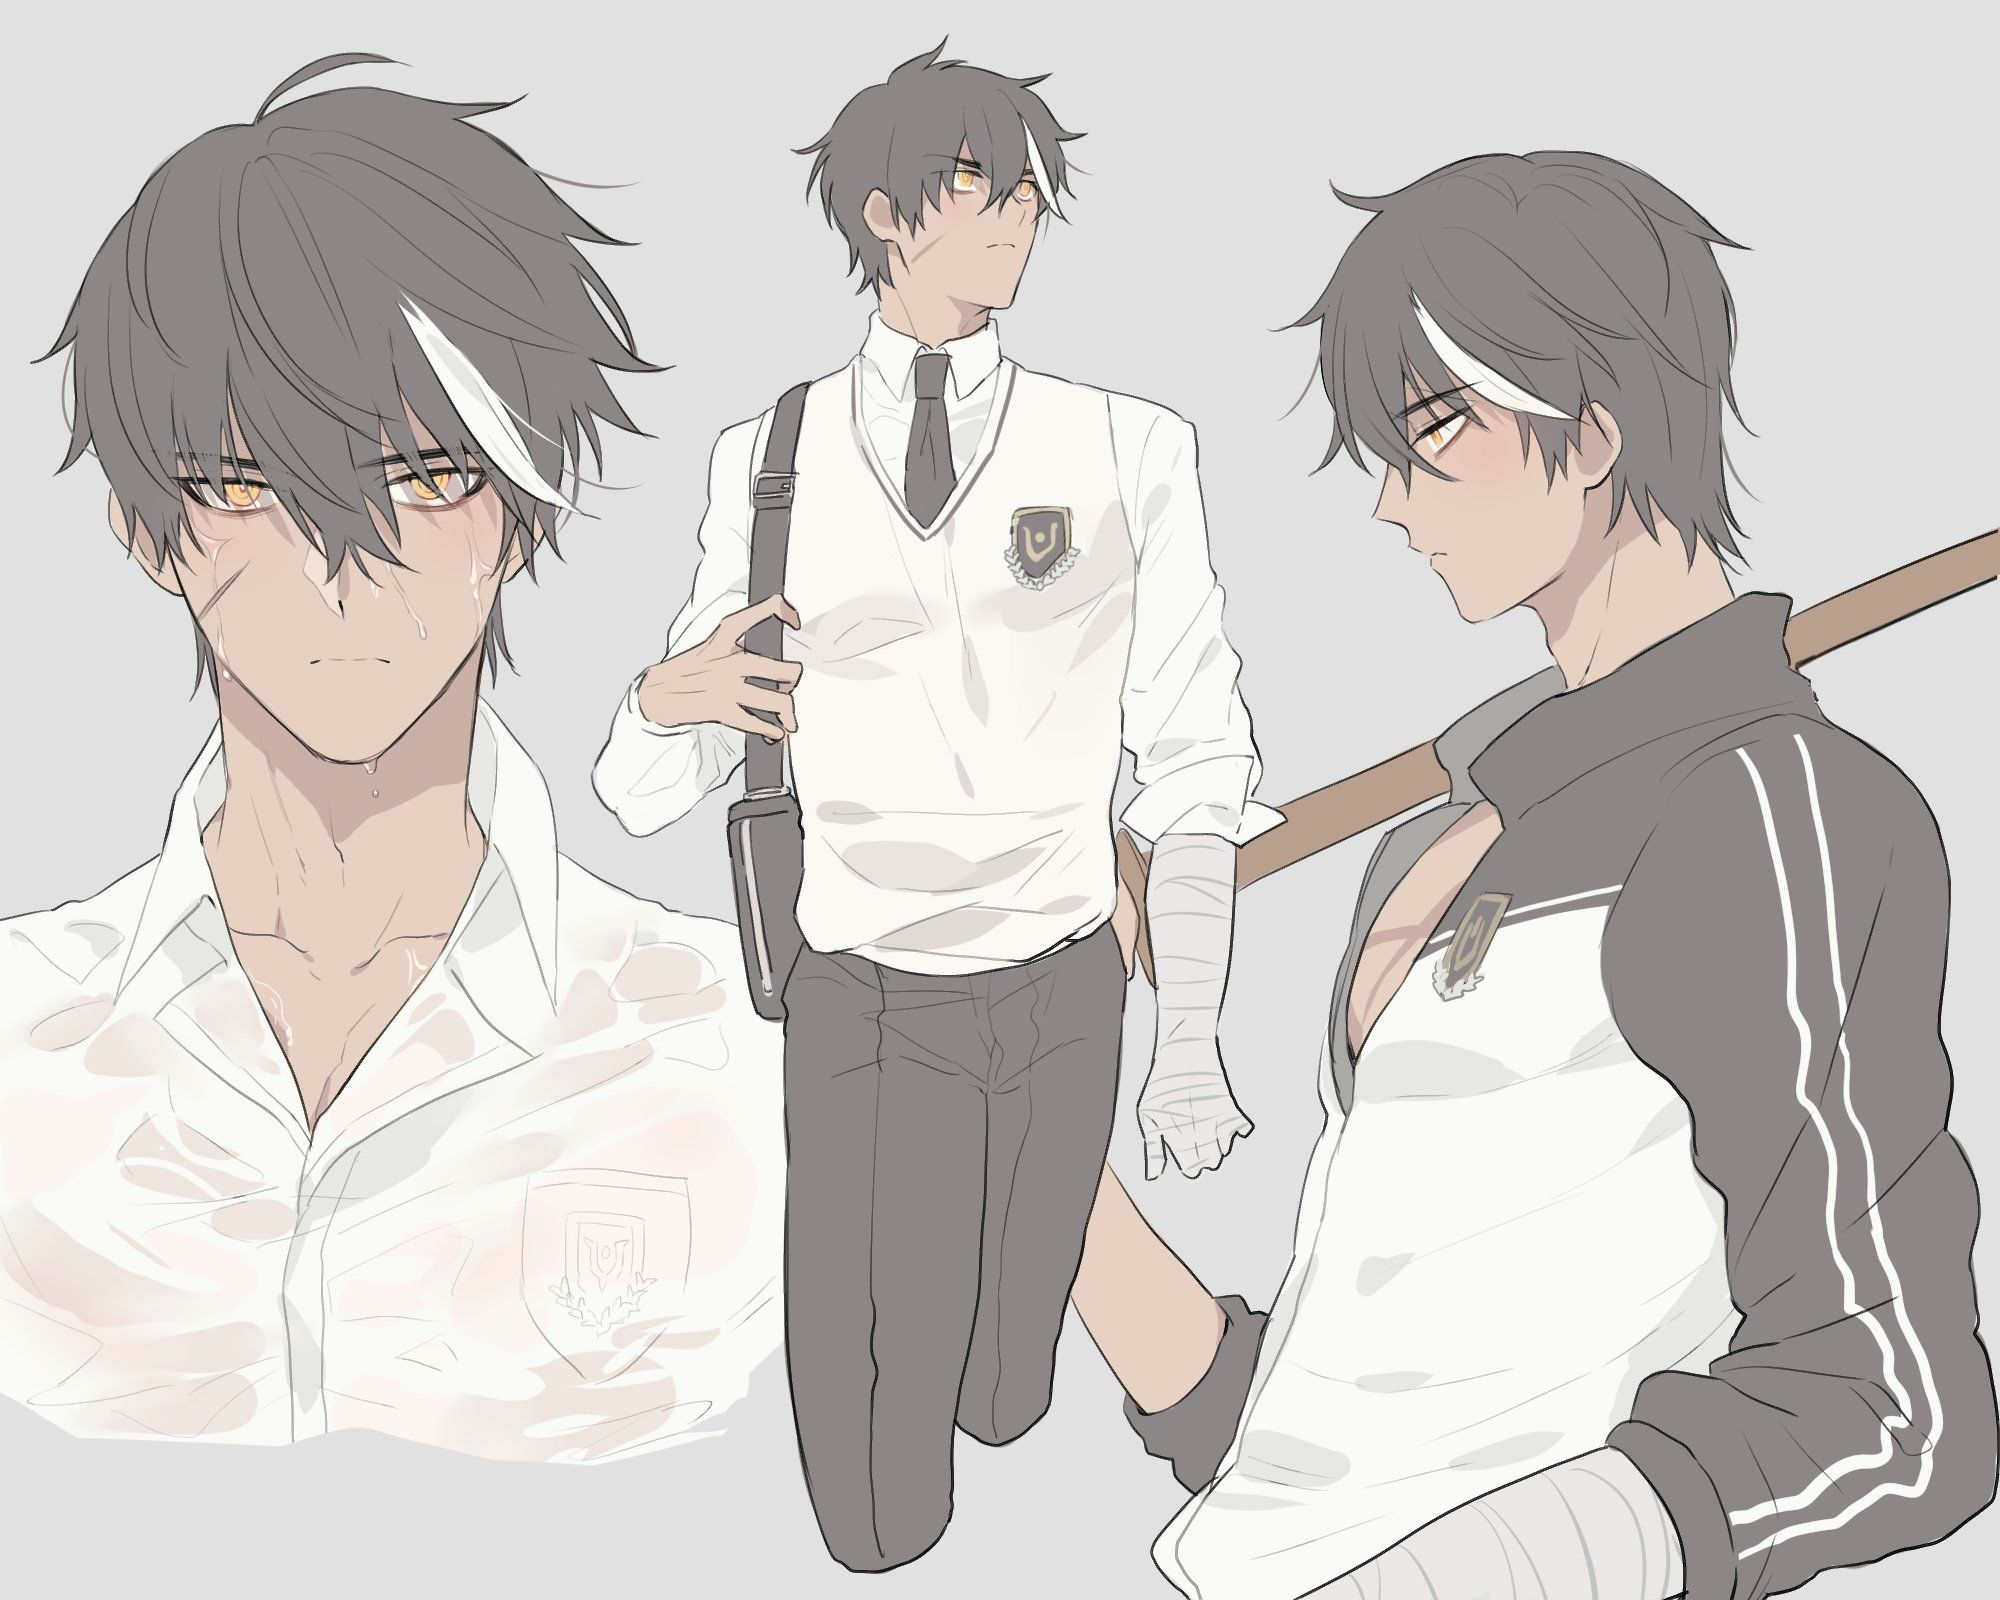 Pin By Malena Sue On Anime Art Cool Anime Guys Elsword Cartoon Character Design